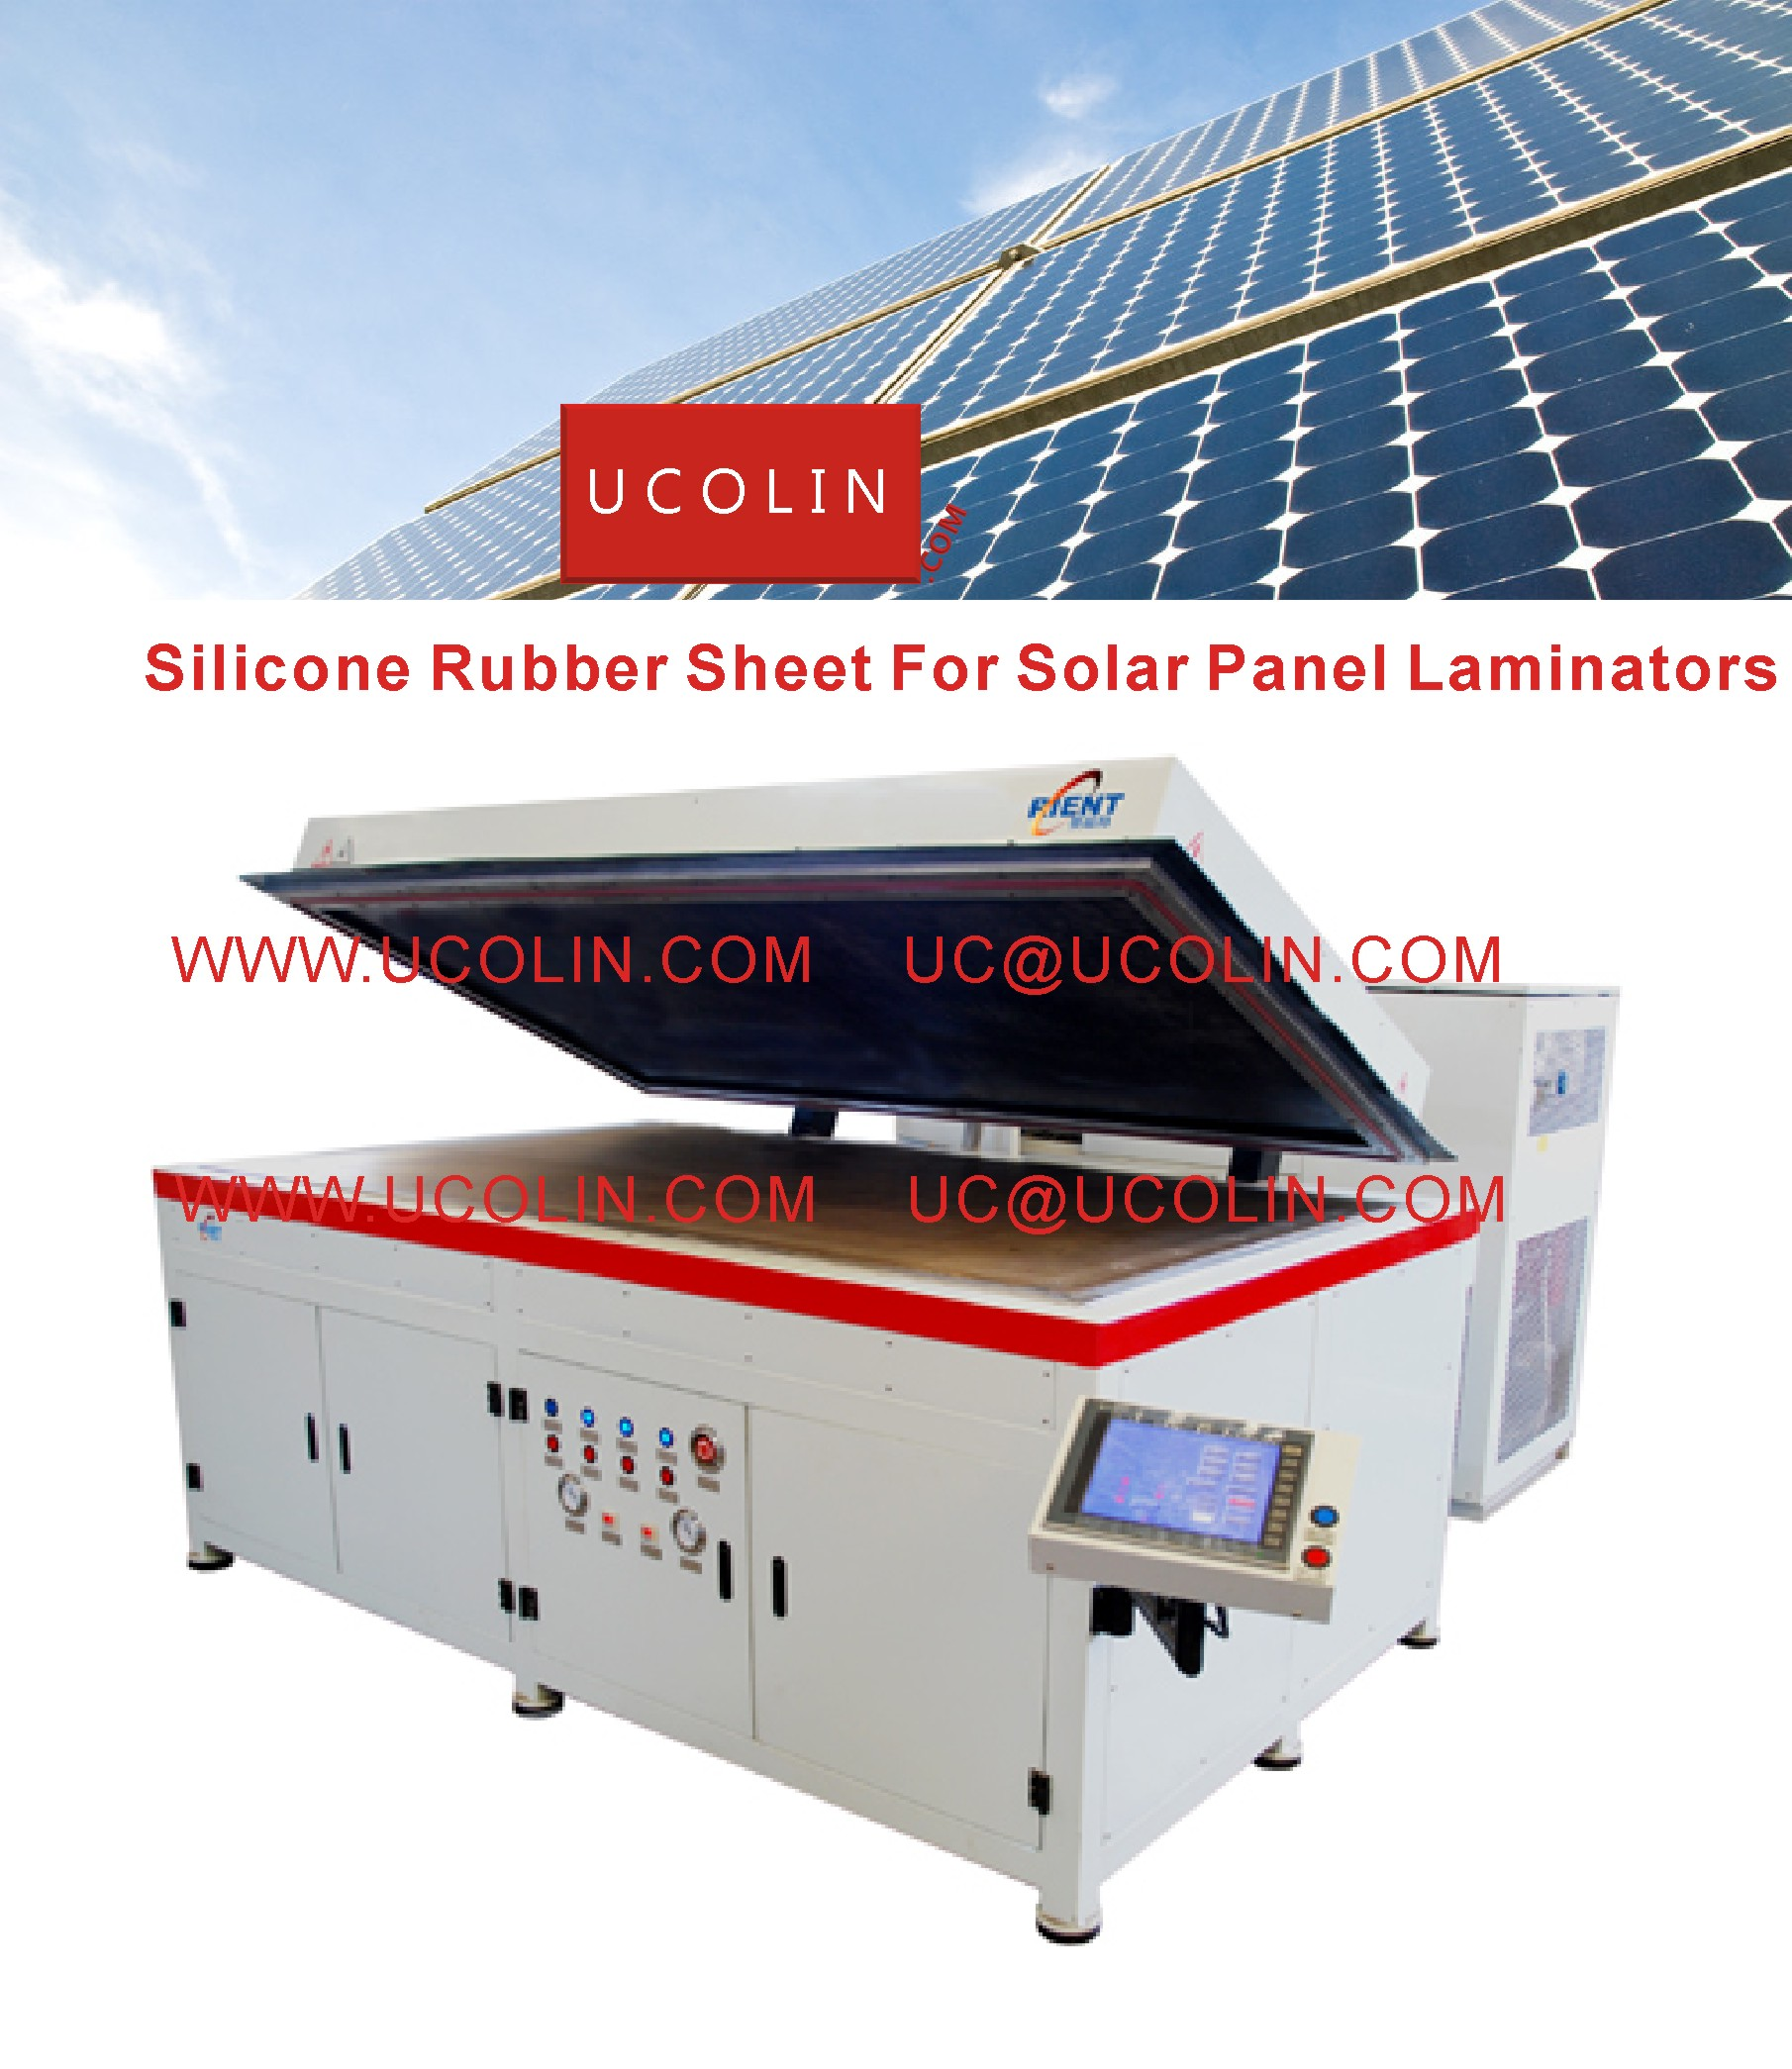 002 Silicon Rubber Sheet For Solar Panel Laminators